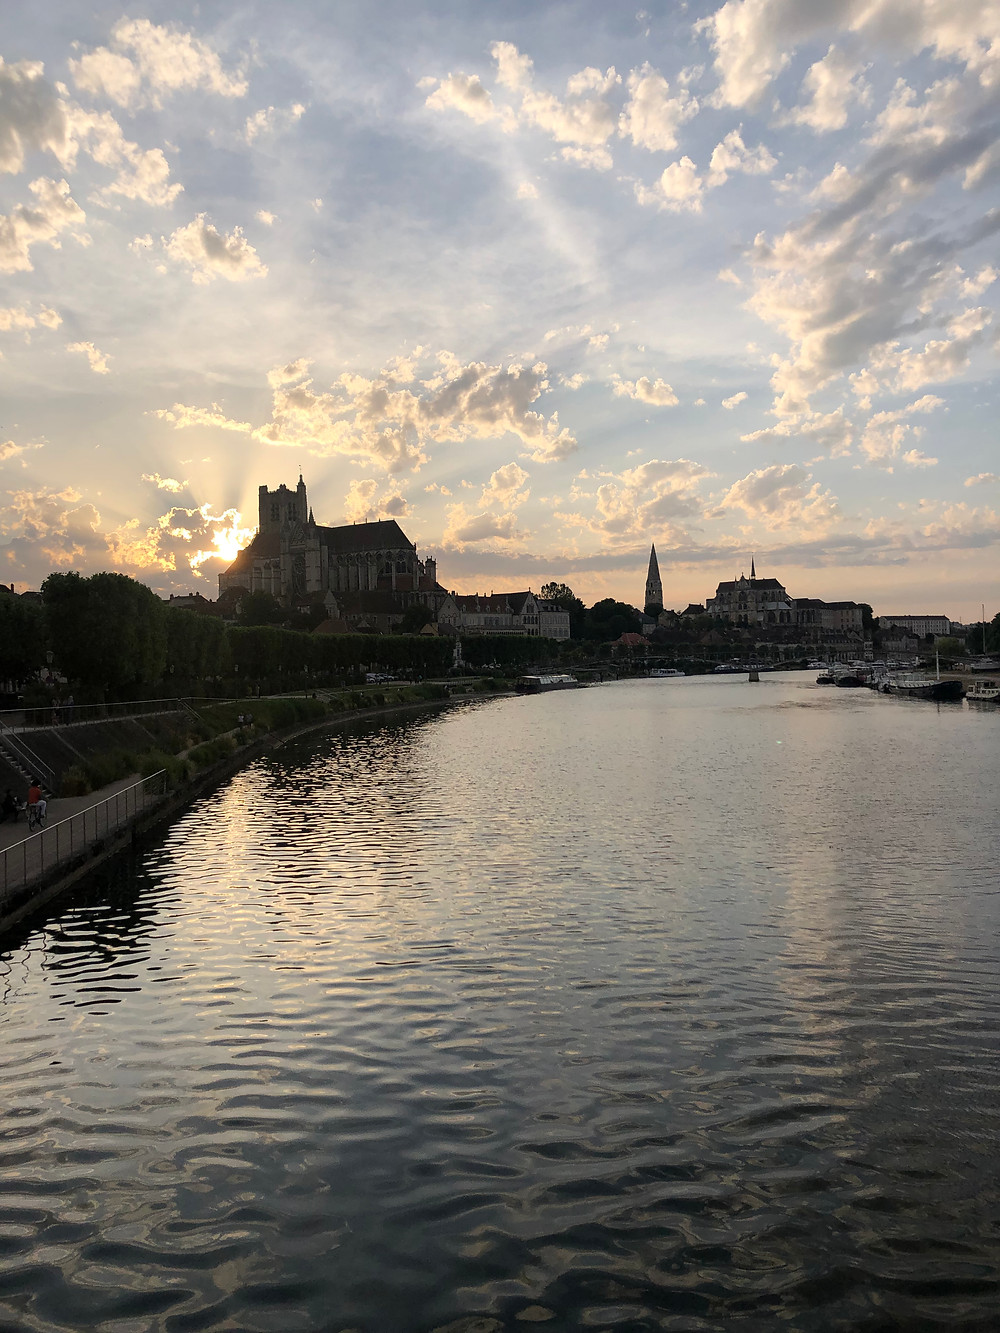 Yonne river in Auxerre at sunset with a view of Saint Germain abbey